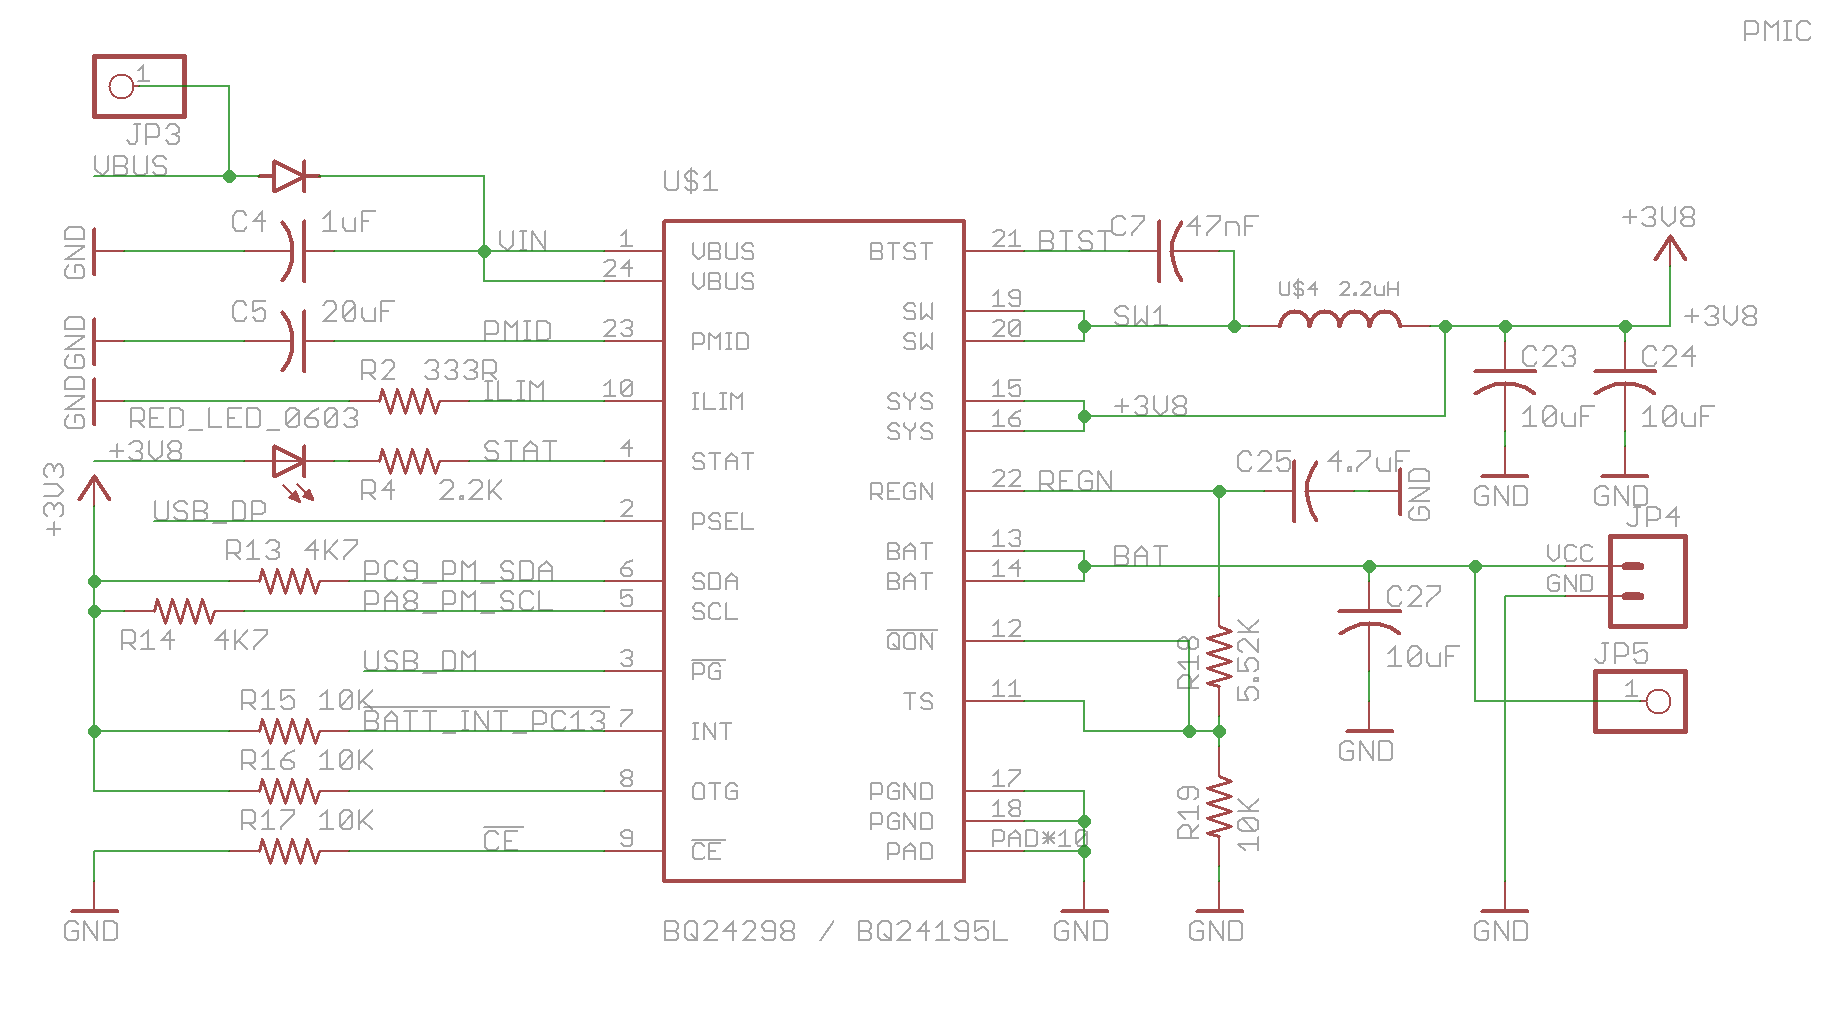 Particle Datasheets Electron Datasheet Request Use The Form Below To Delete This Led Tv Diagram Block Pdf Uses Tis Bq24195 As Power Management And Charging Unit Pmic Intelligently Sources From Either Vin Pin Usb Port Or